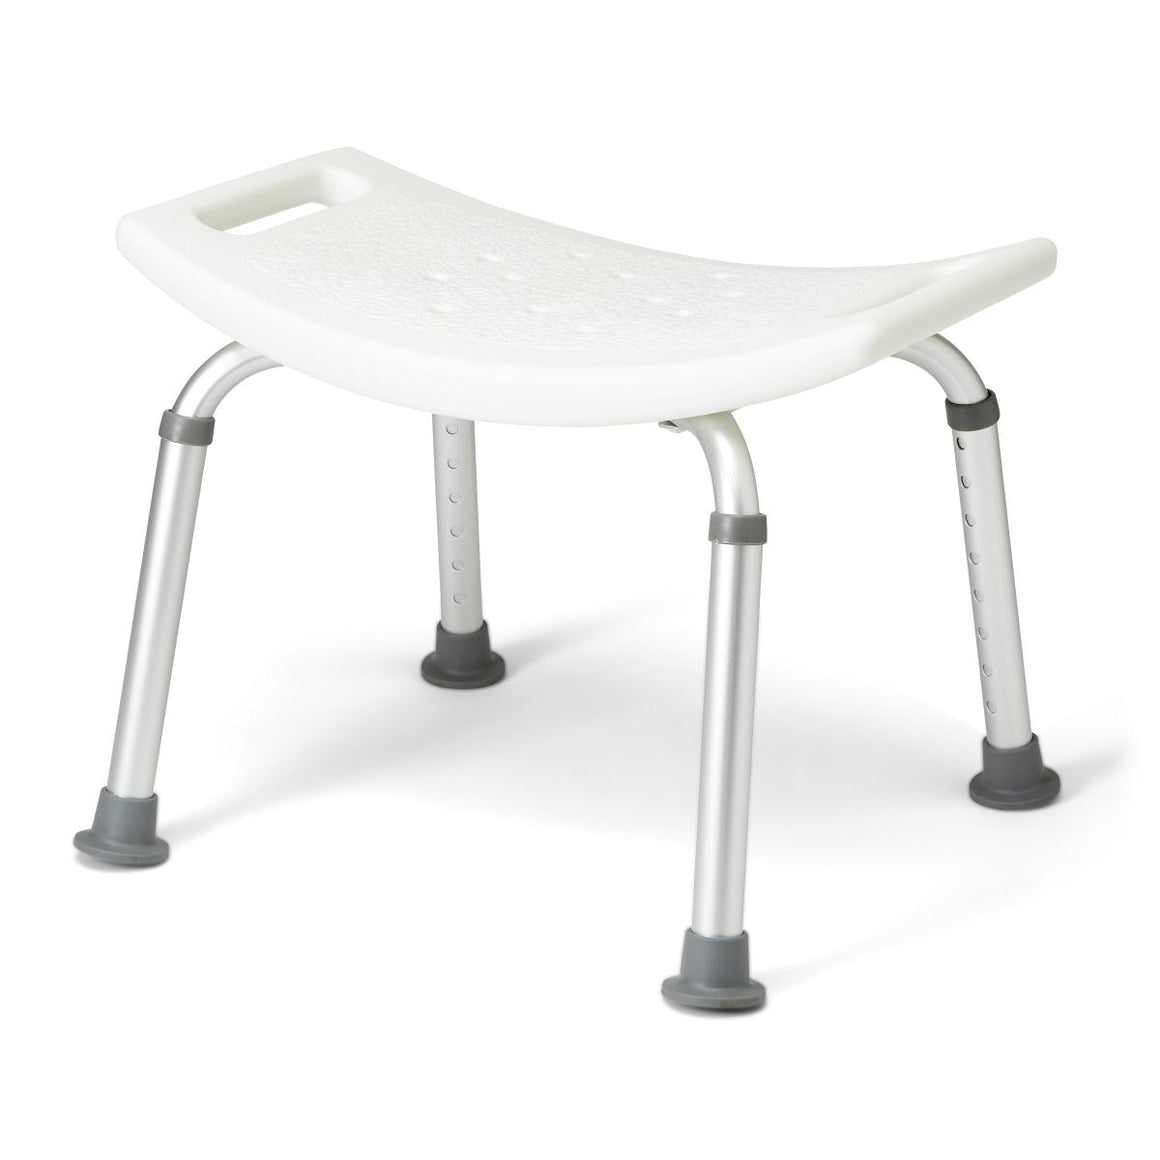 Aluminum Bath Benches without Back,White, Case of 2